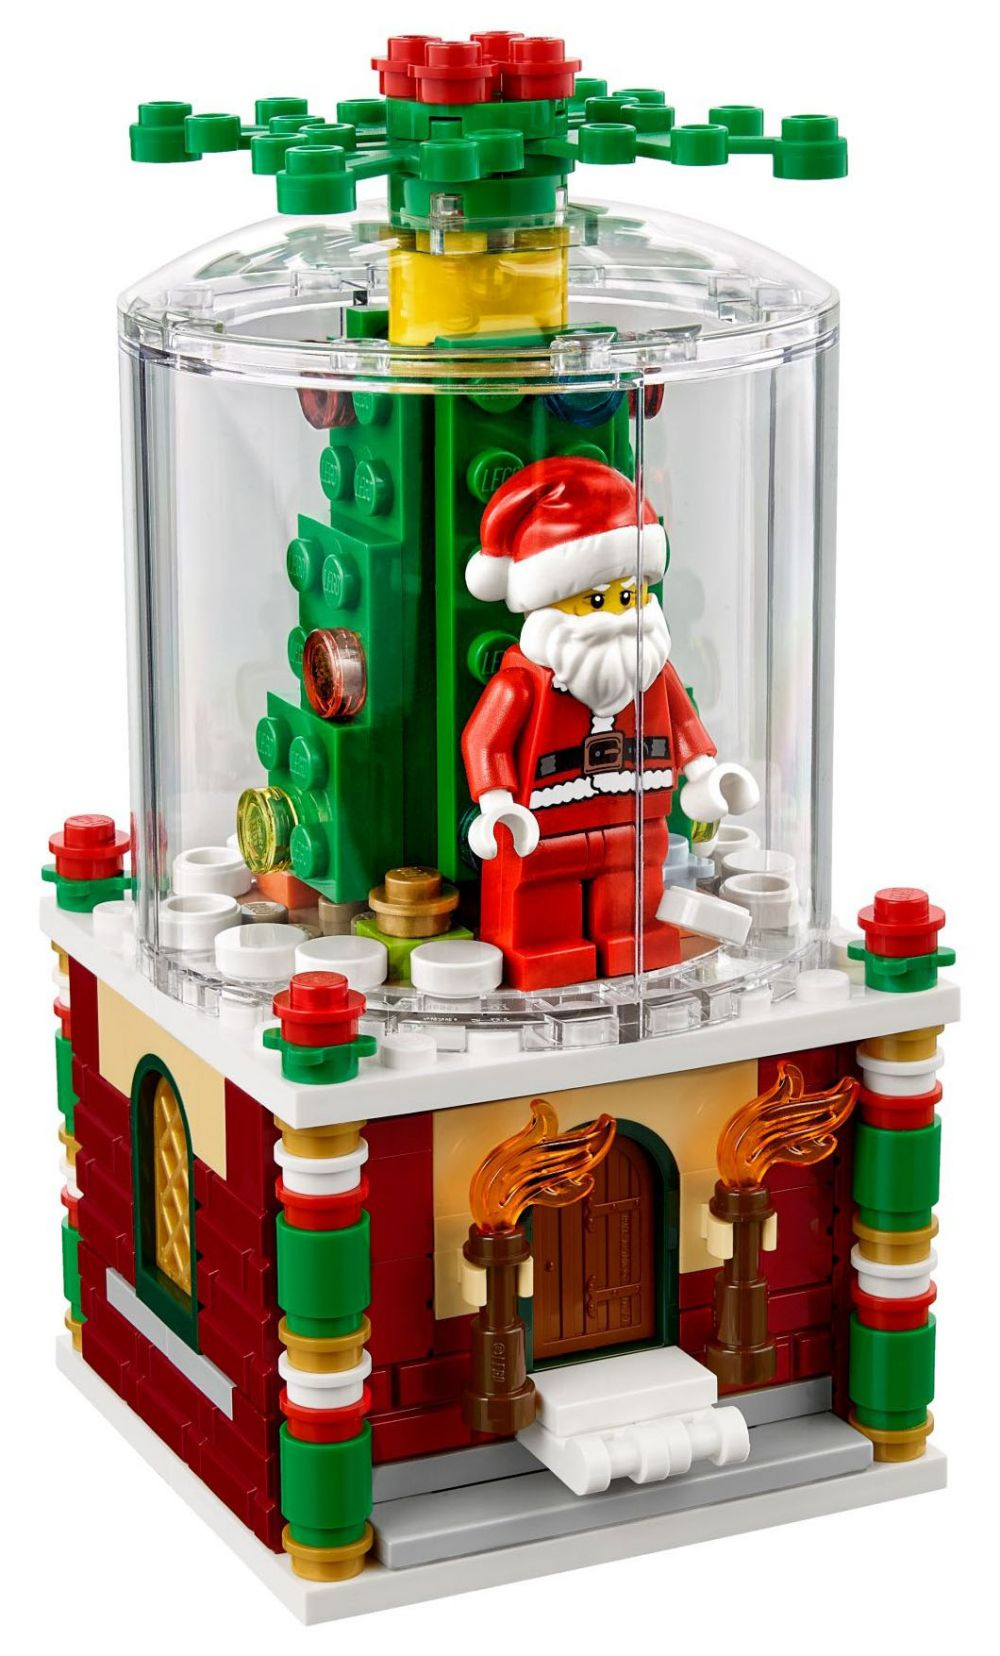 boule de noel lego. Black Bedroom Furniture Sets. Home Design Ideas